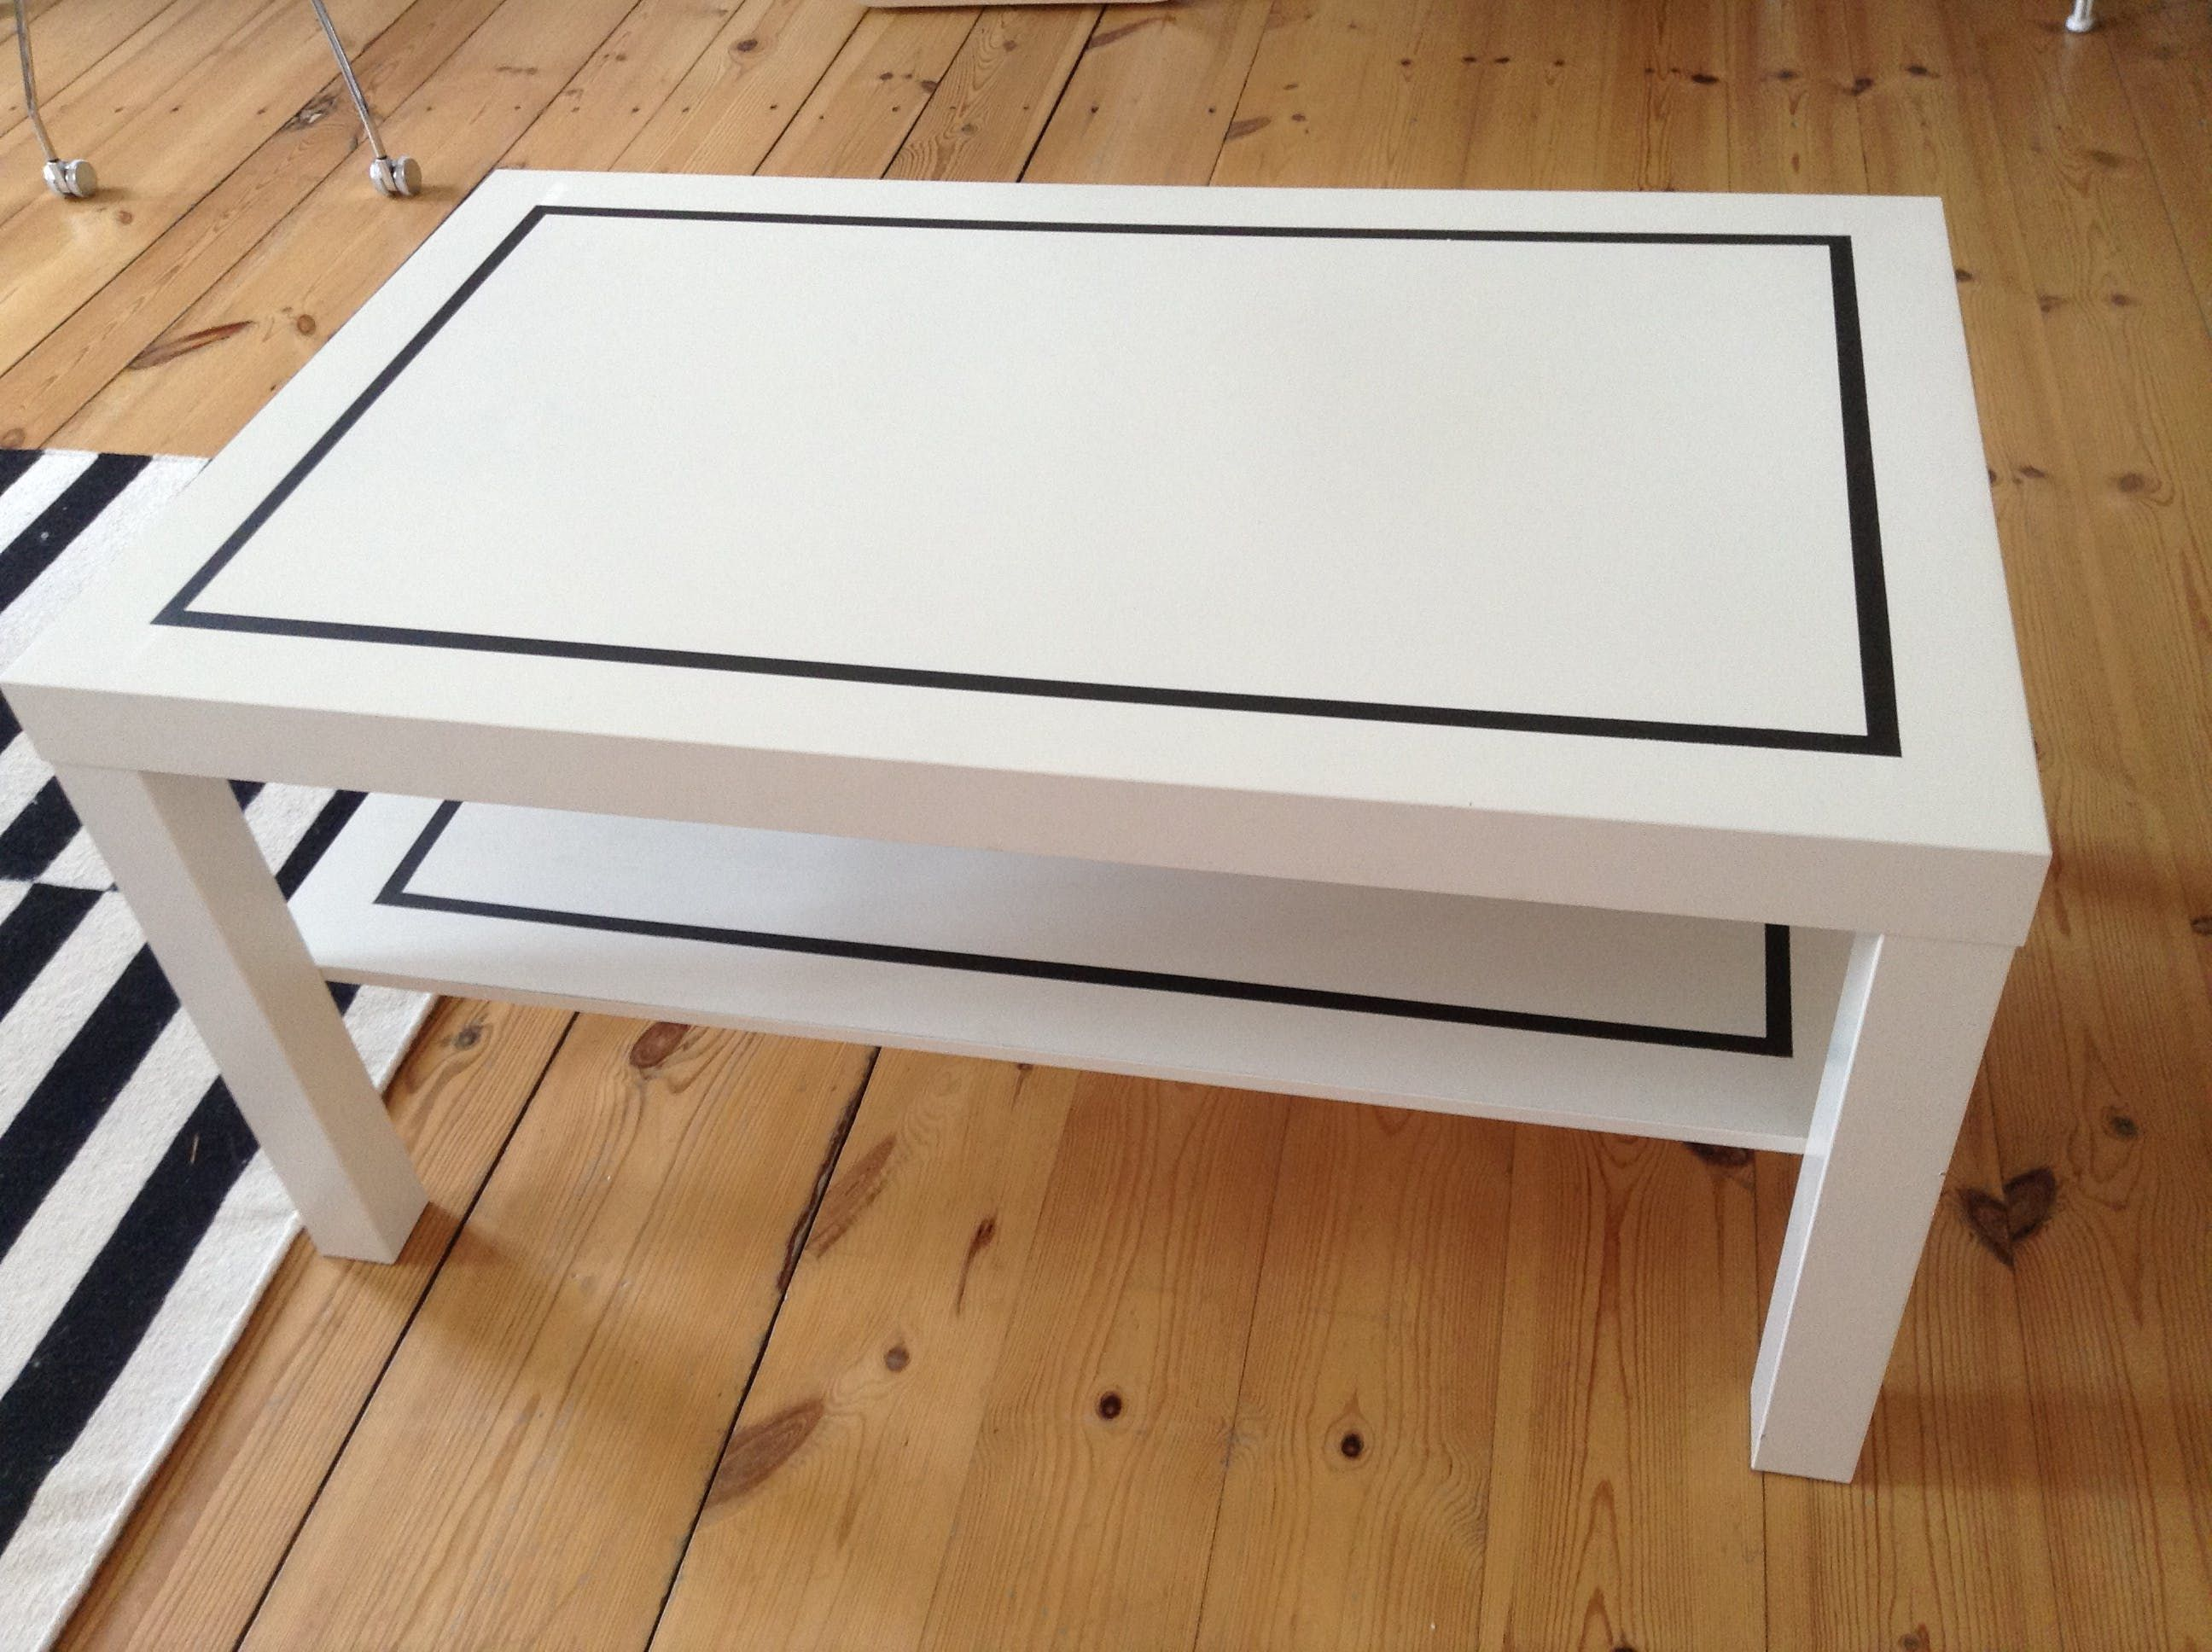 Ikea Lack Upgrade A Simple Stylish Diy Ikea Coffee Table Upgrade In 2019 Easy